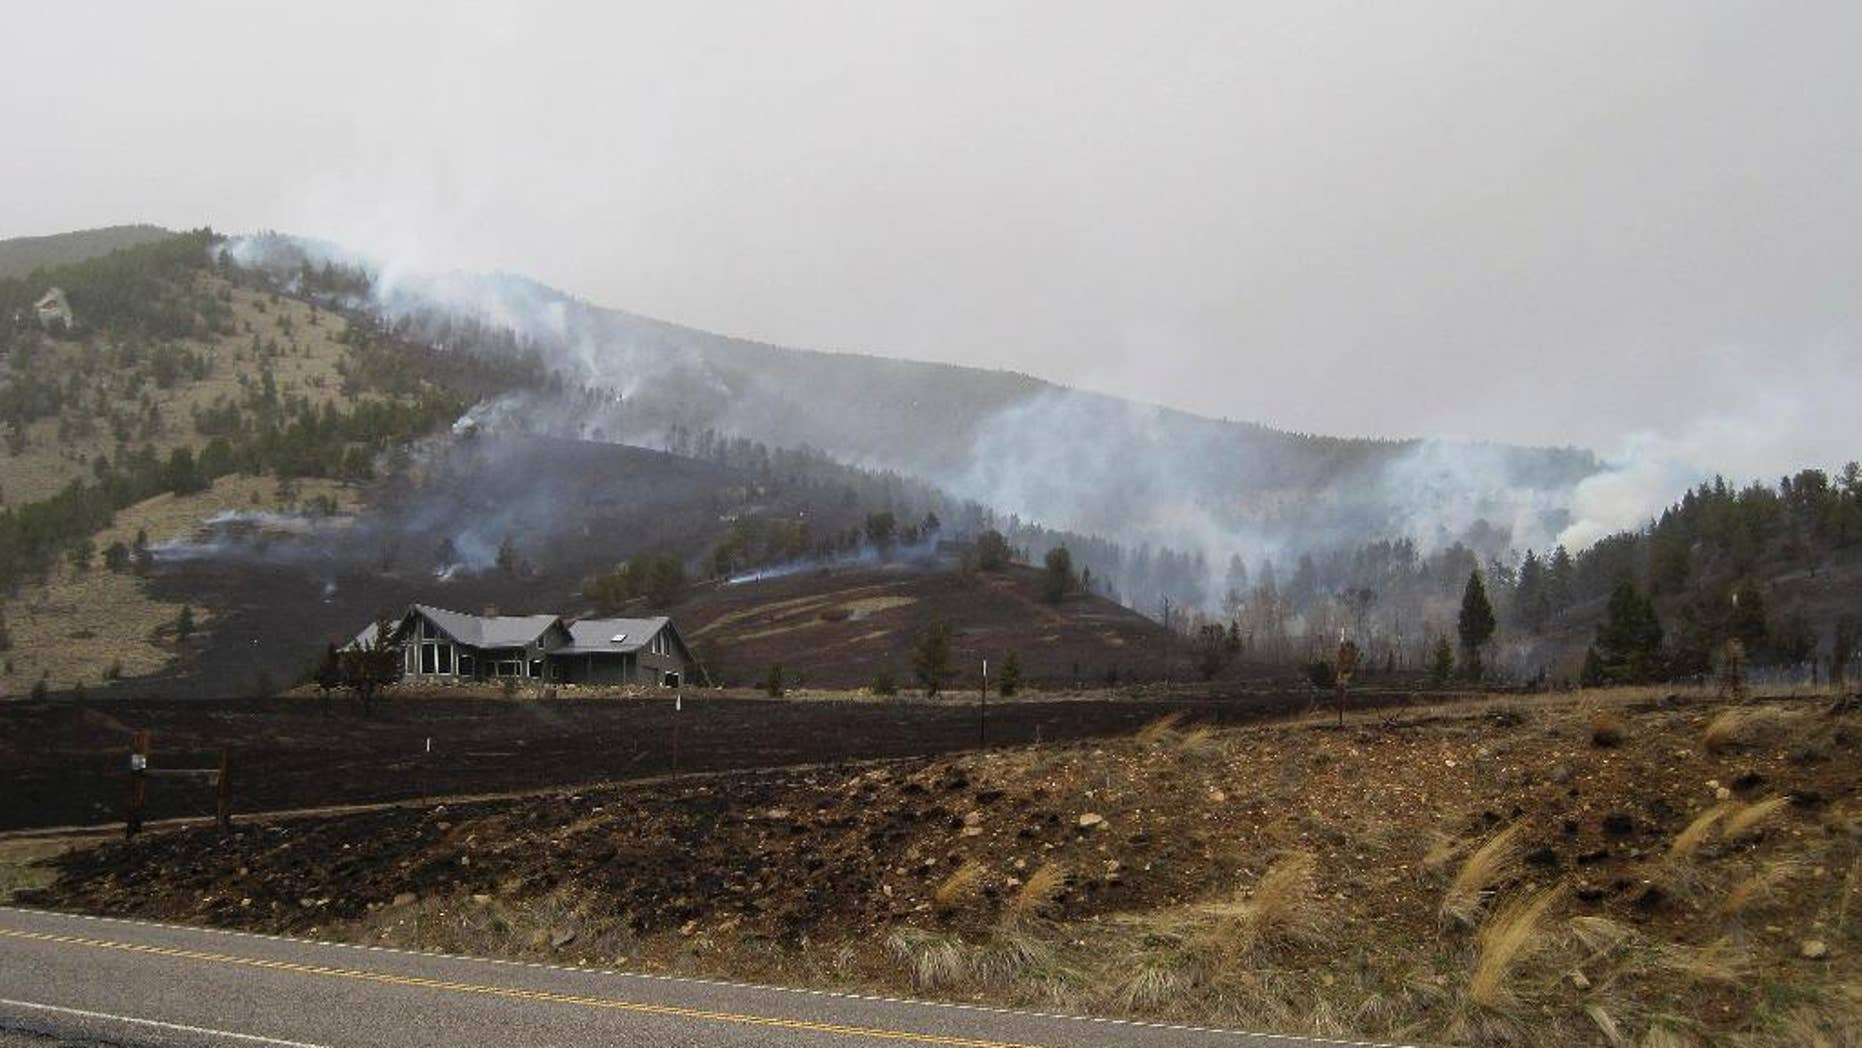 In this photo released by the U.S. Forest Service, the Wildland Fire burns along Nichols Creek Saturday, March 28, 2015, near Red Lodge, Montana. Authorities evacuated a ski lodge in southern Montana because of a wind-driven wildfire heading toward it. The wildfire was reported about 1:45 p.m. Saturday and had burned an estimated 200 acres of grass and timber about 4 miles west of the community of Red Lodge. The fire began on open private land, but it was driven by winds gusting 35 to 50 mph into the Custer National Forest, where the Red Lodge Mountain Resort ski area is located. (AP Photo/U.S. Forest Service)